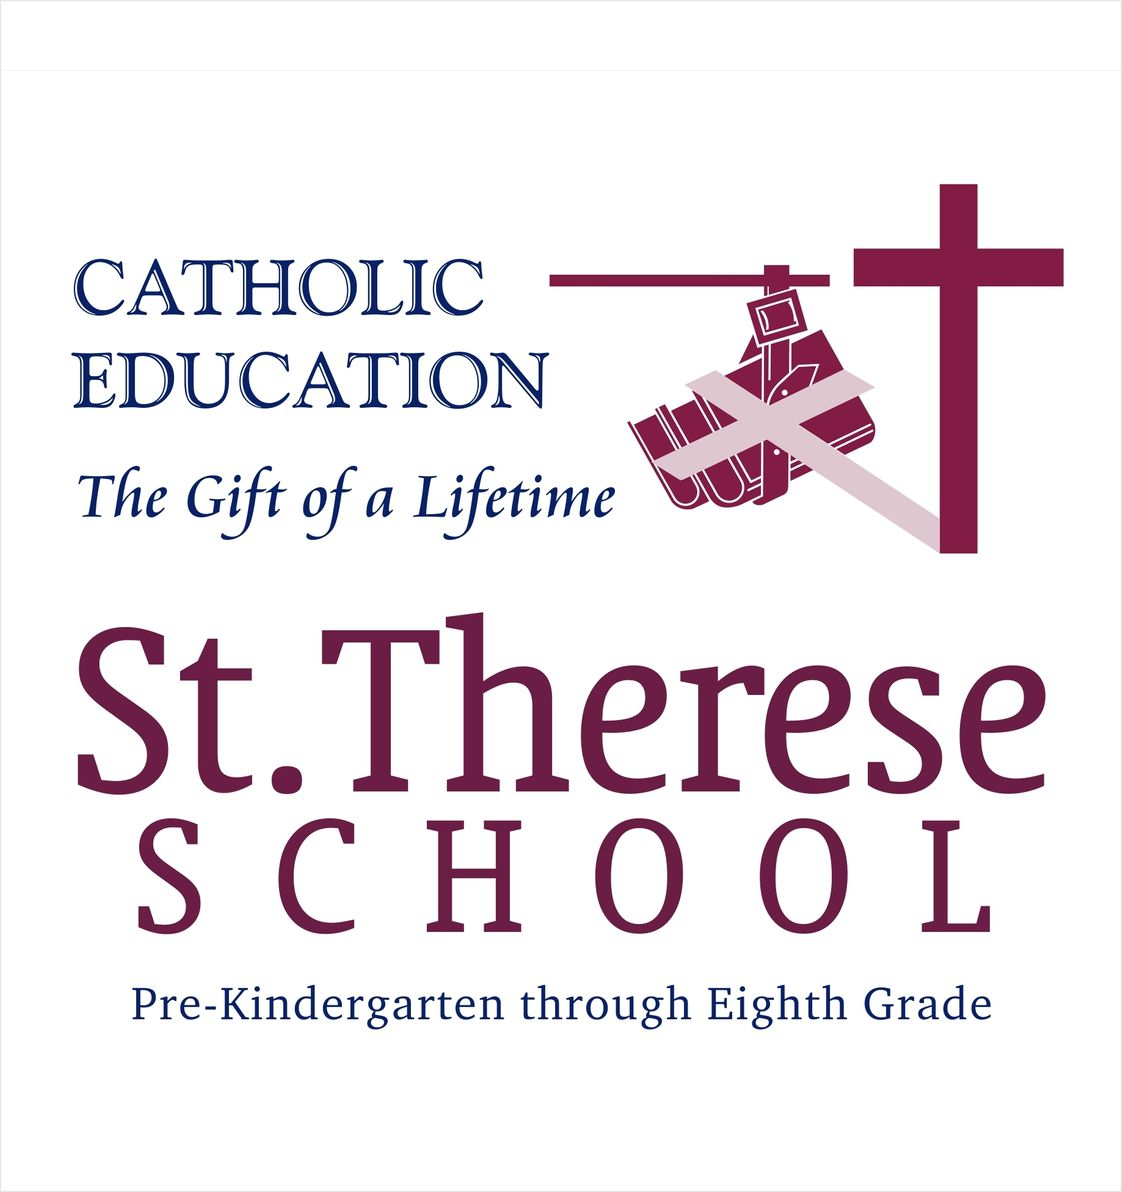 St. Therese Catholic School Photo - Our Motto